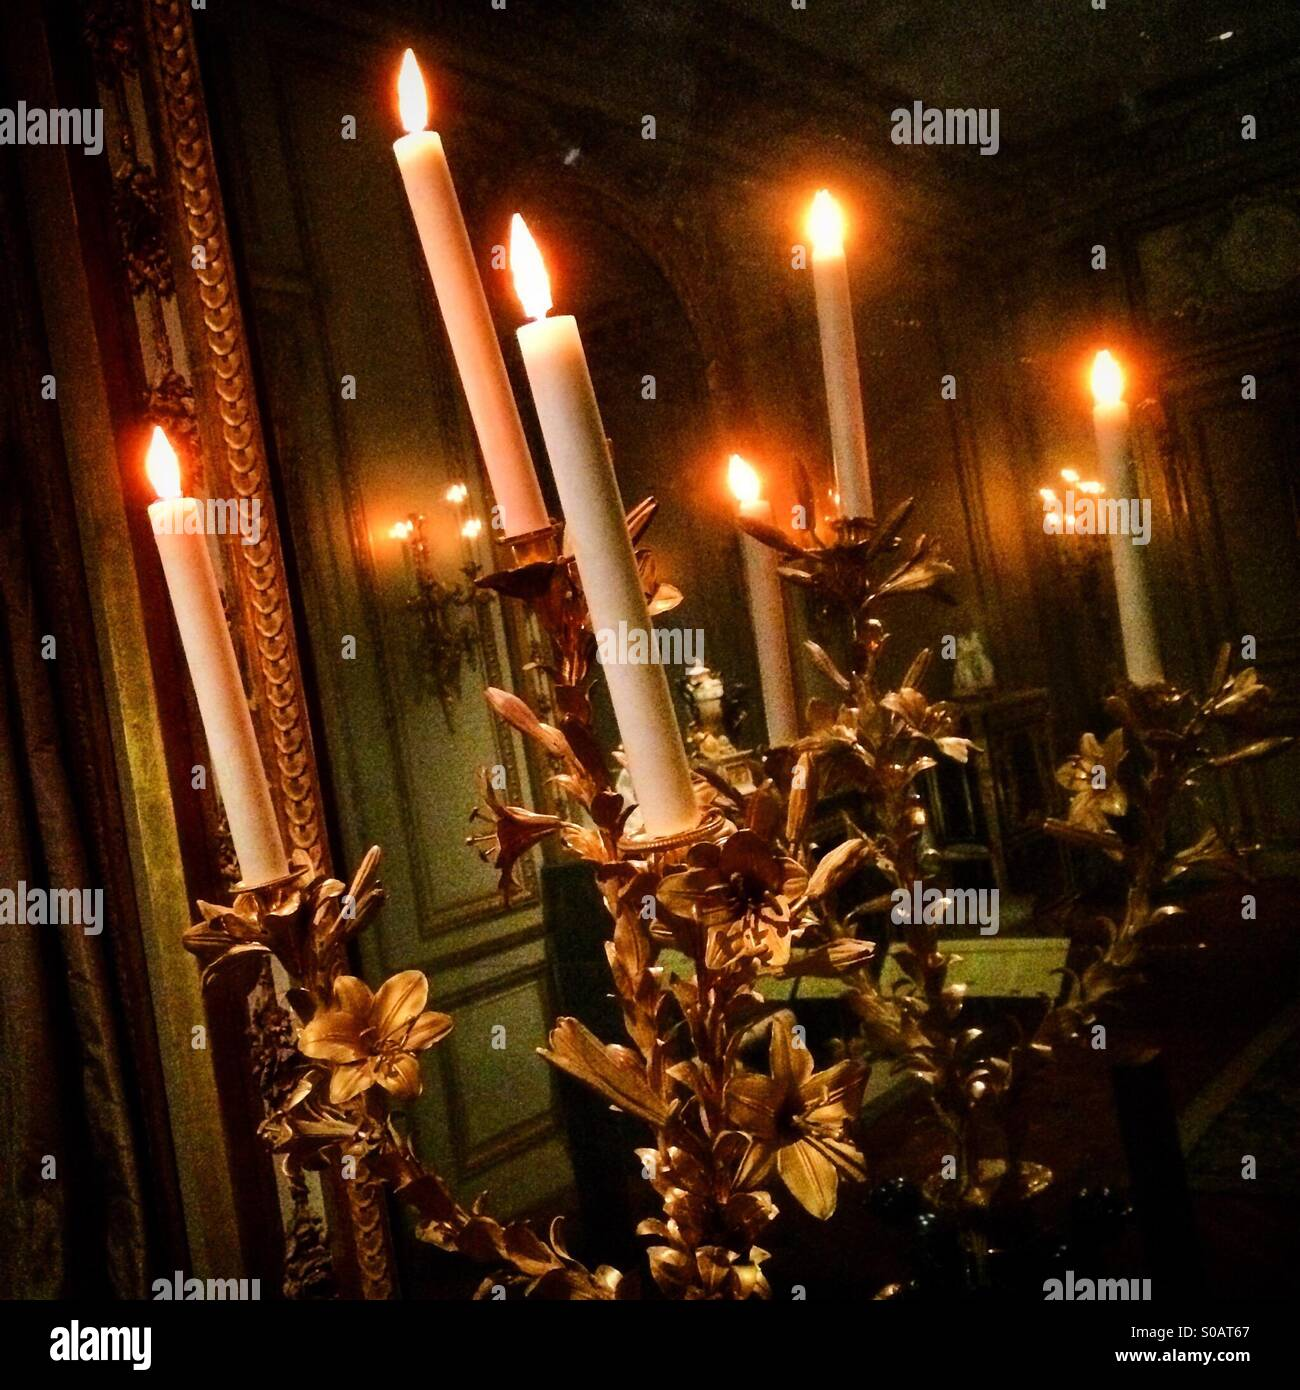 Candles in golden light - Stock Image